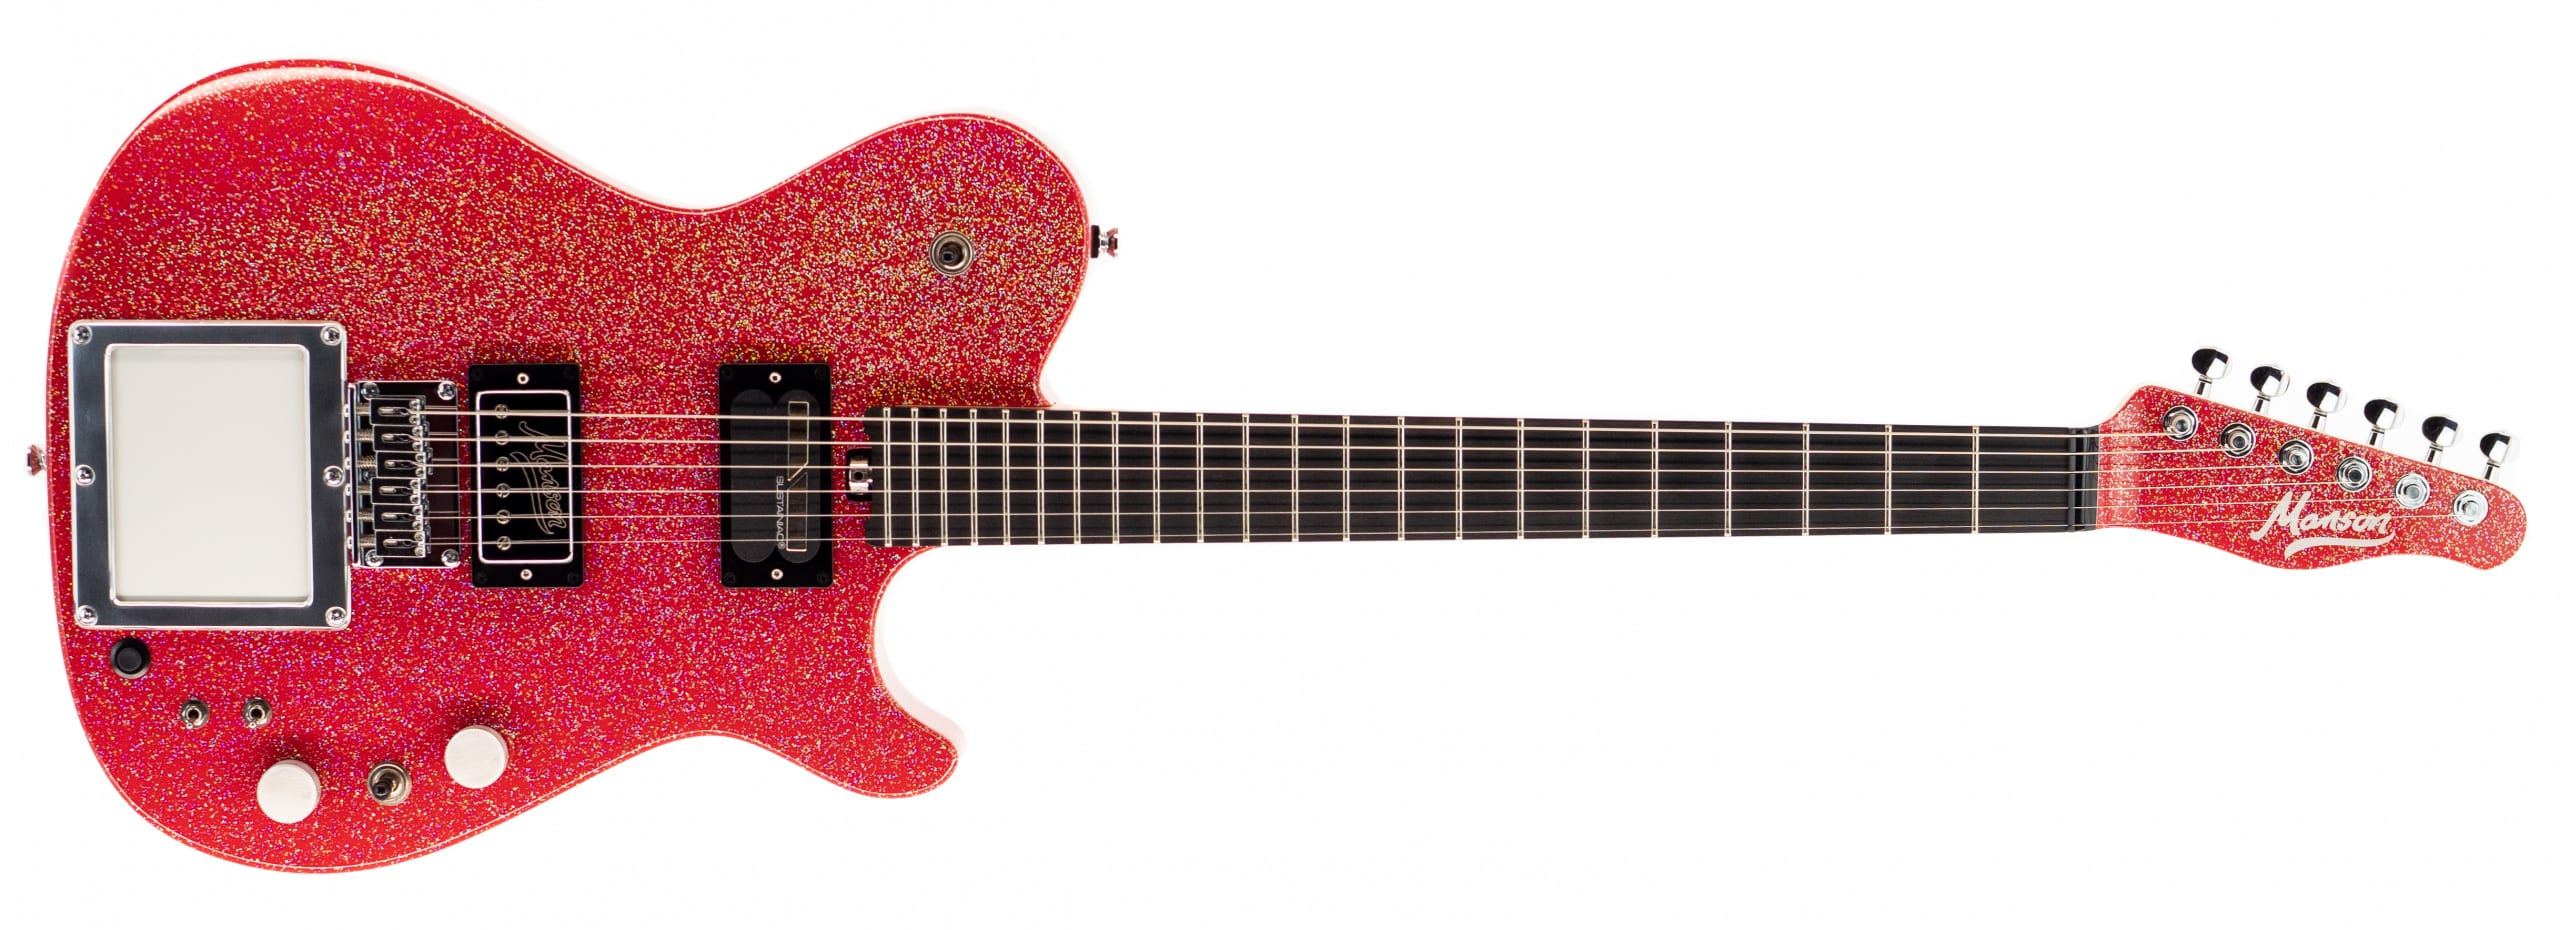 Manson MA 2020 Red Santa Limited Edition